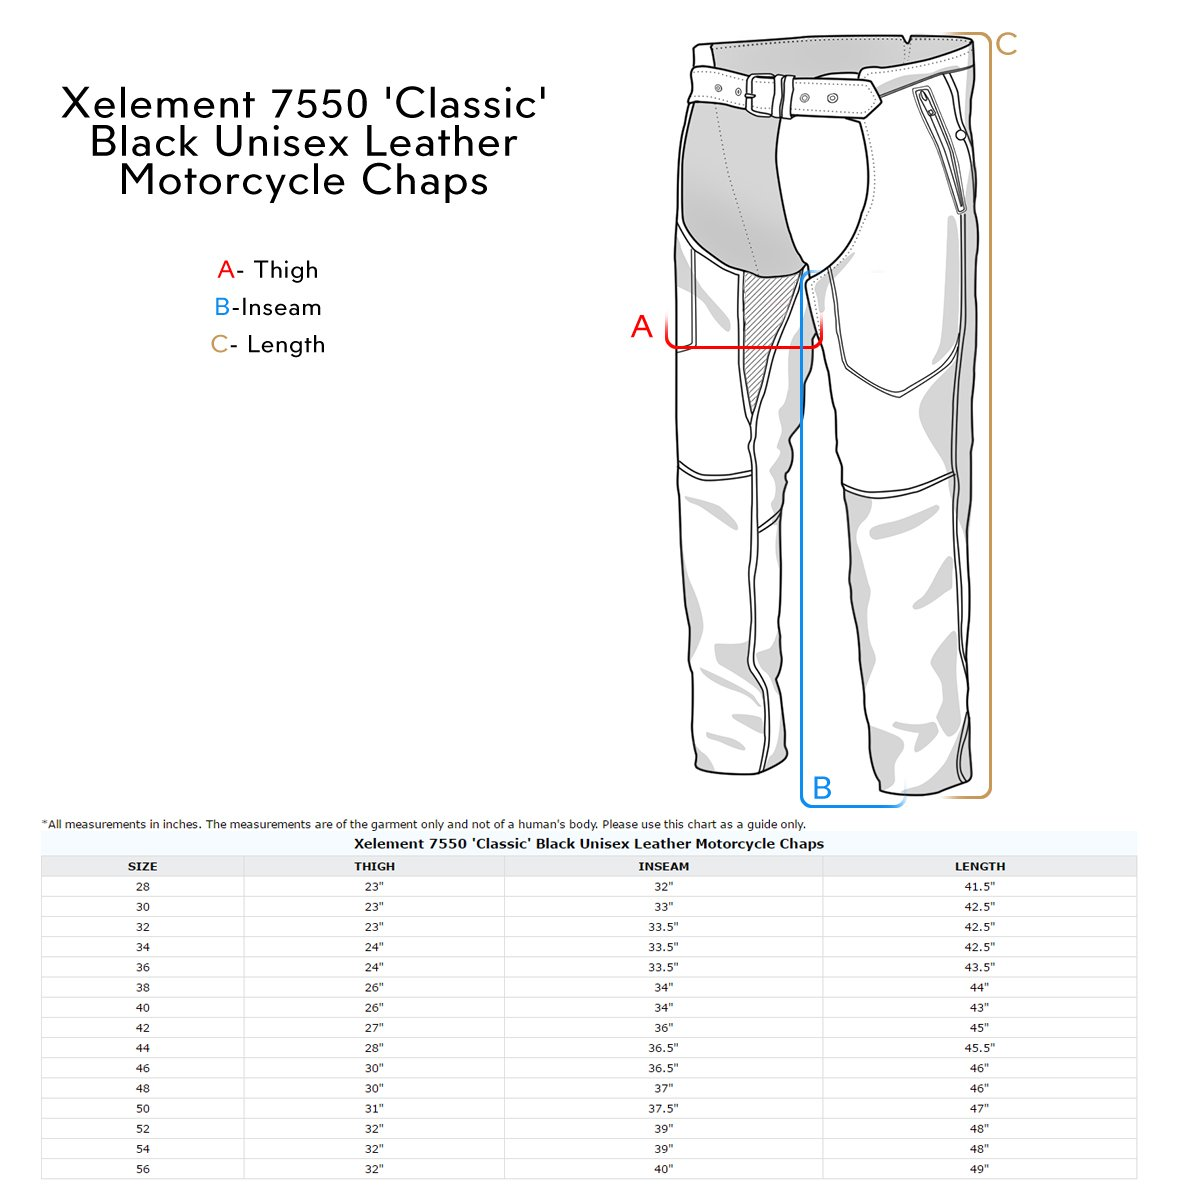 Xelement 7550 Classic Black Unisex Leather Motorcycle Chaps - 36